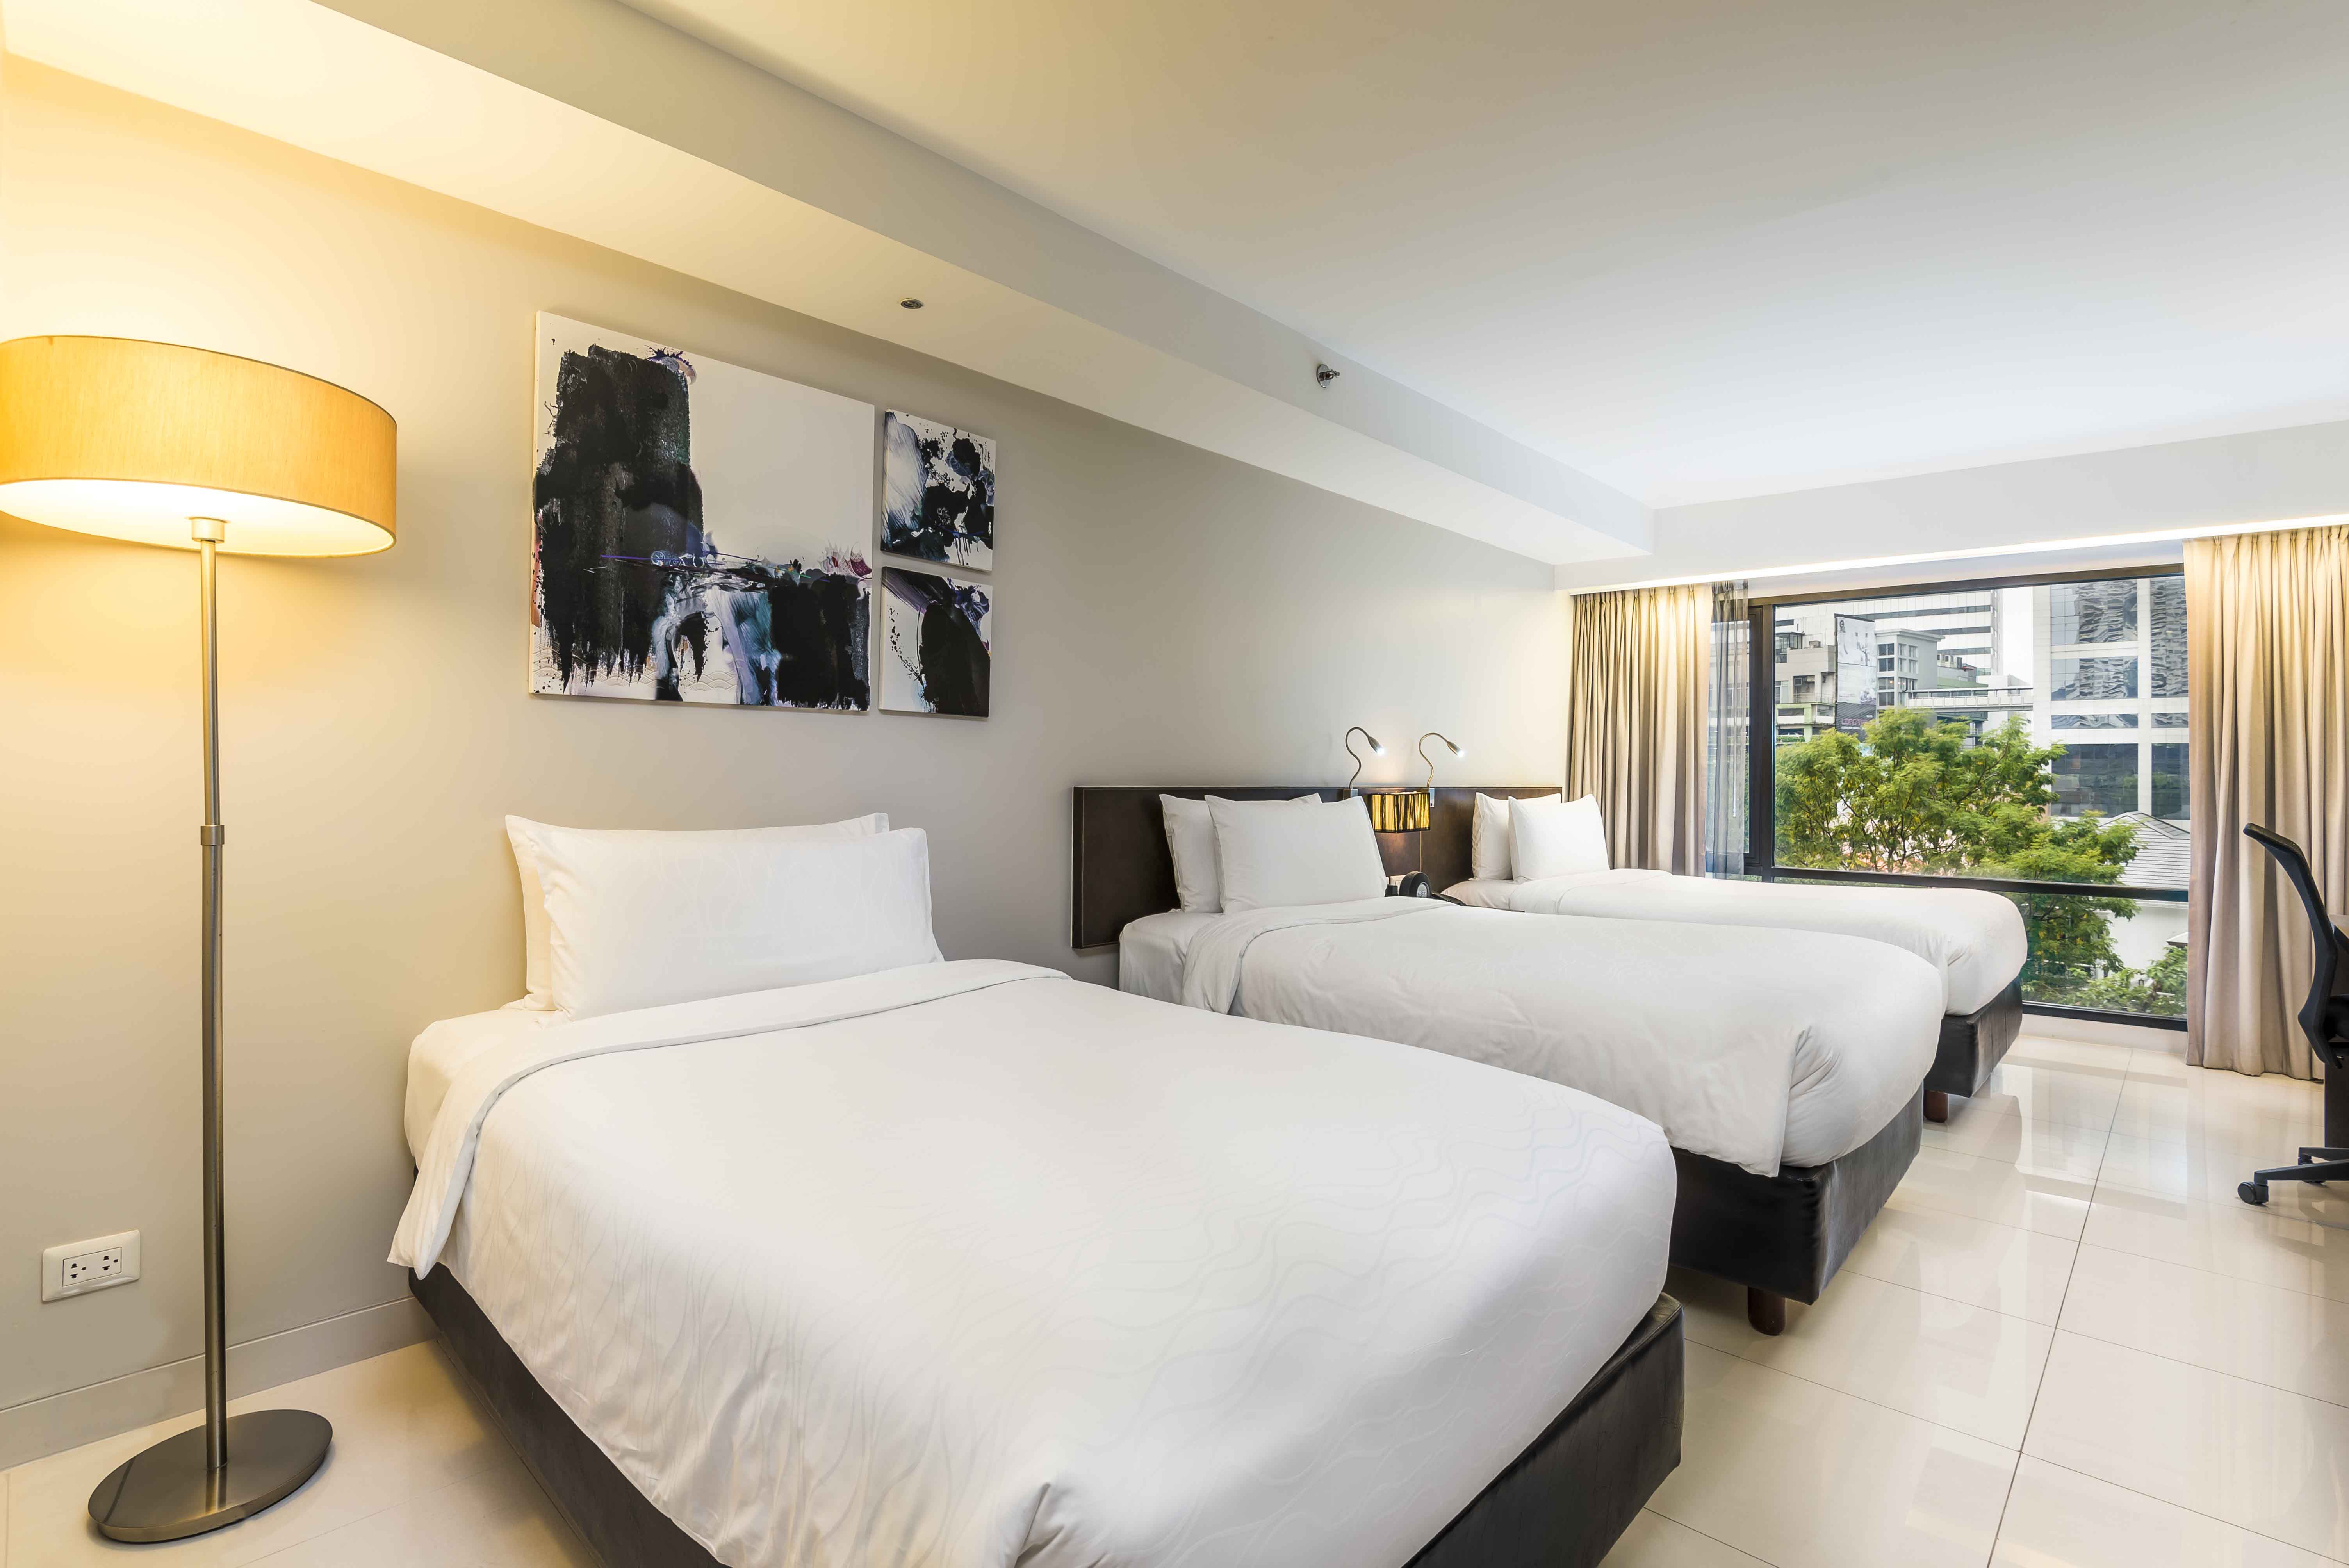 A Perfect Room for Family - Triple Room At Maitria Hotel Sukhumvit 18